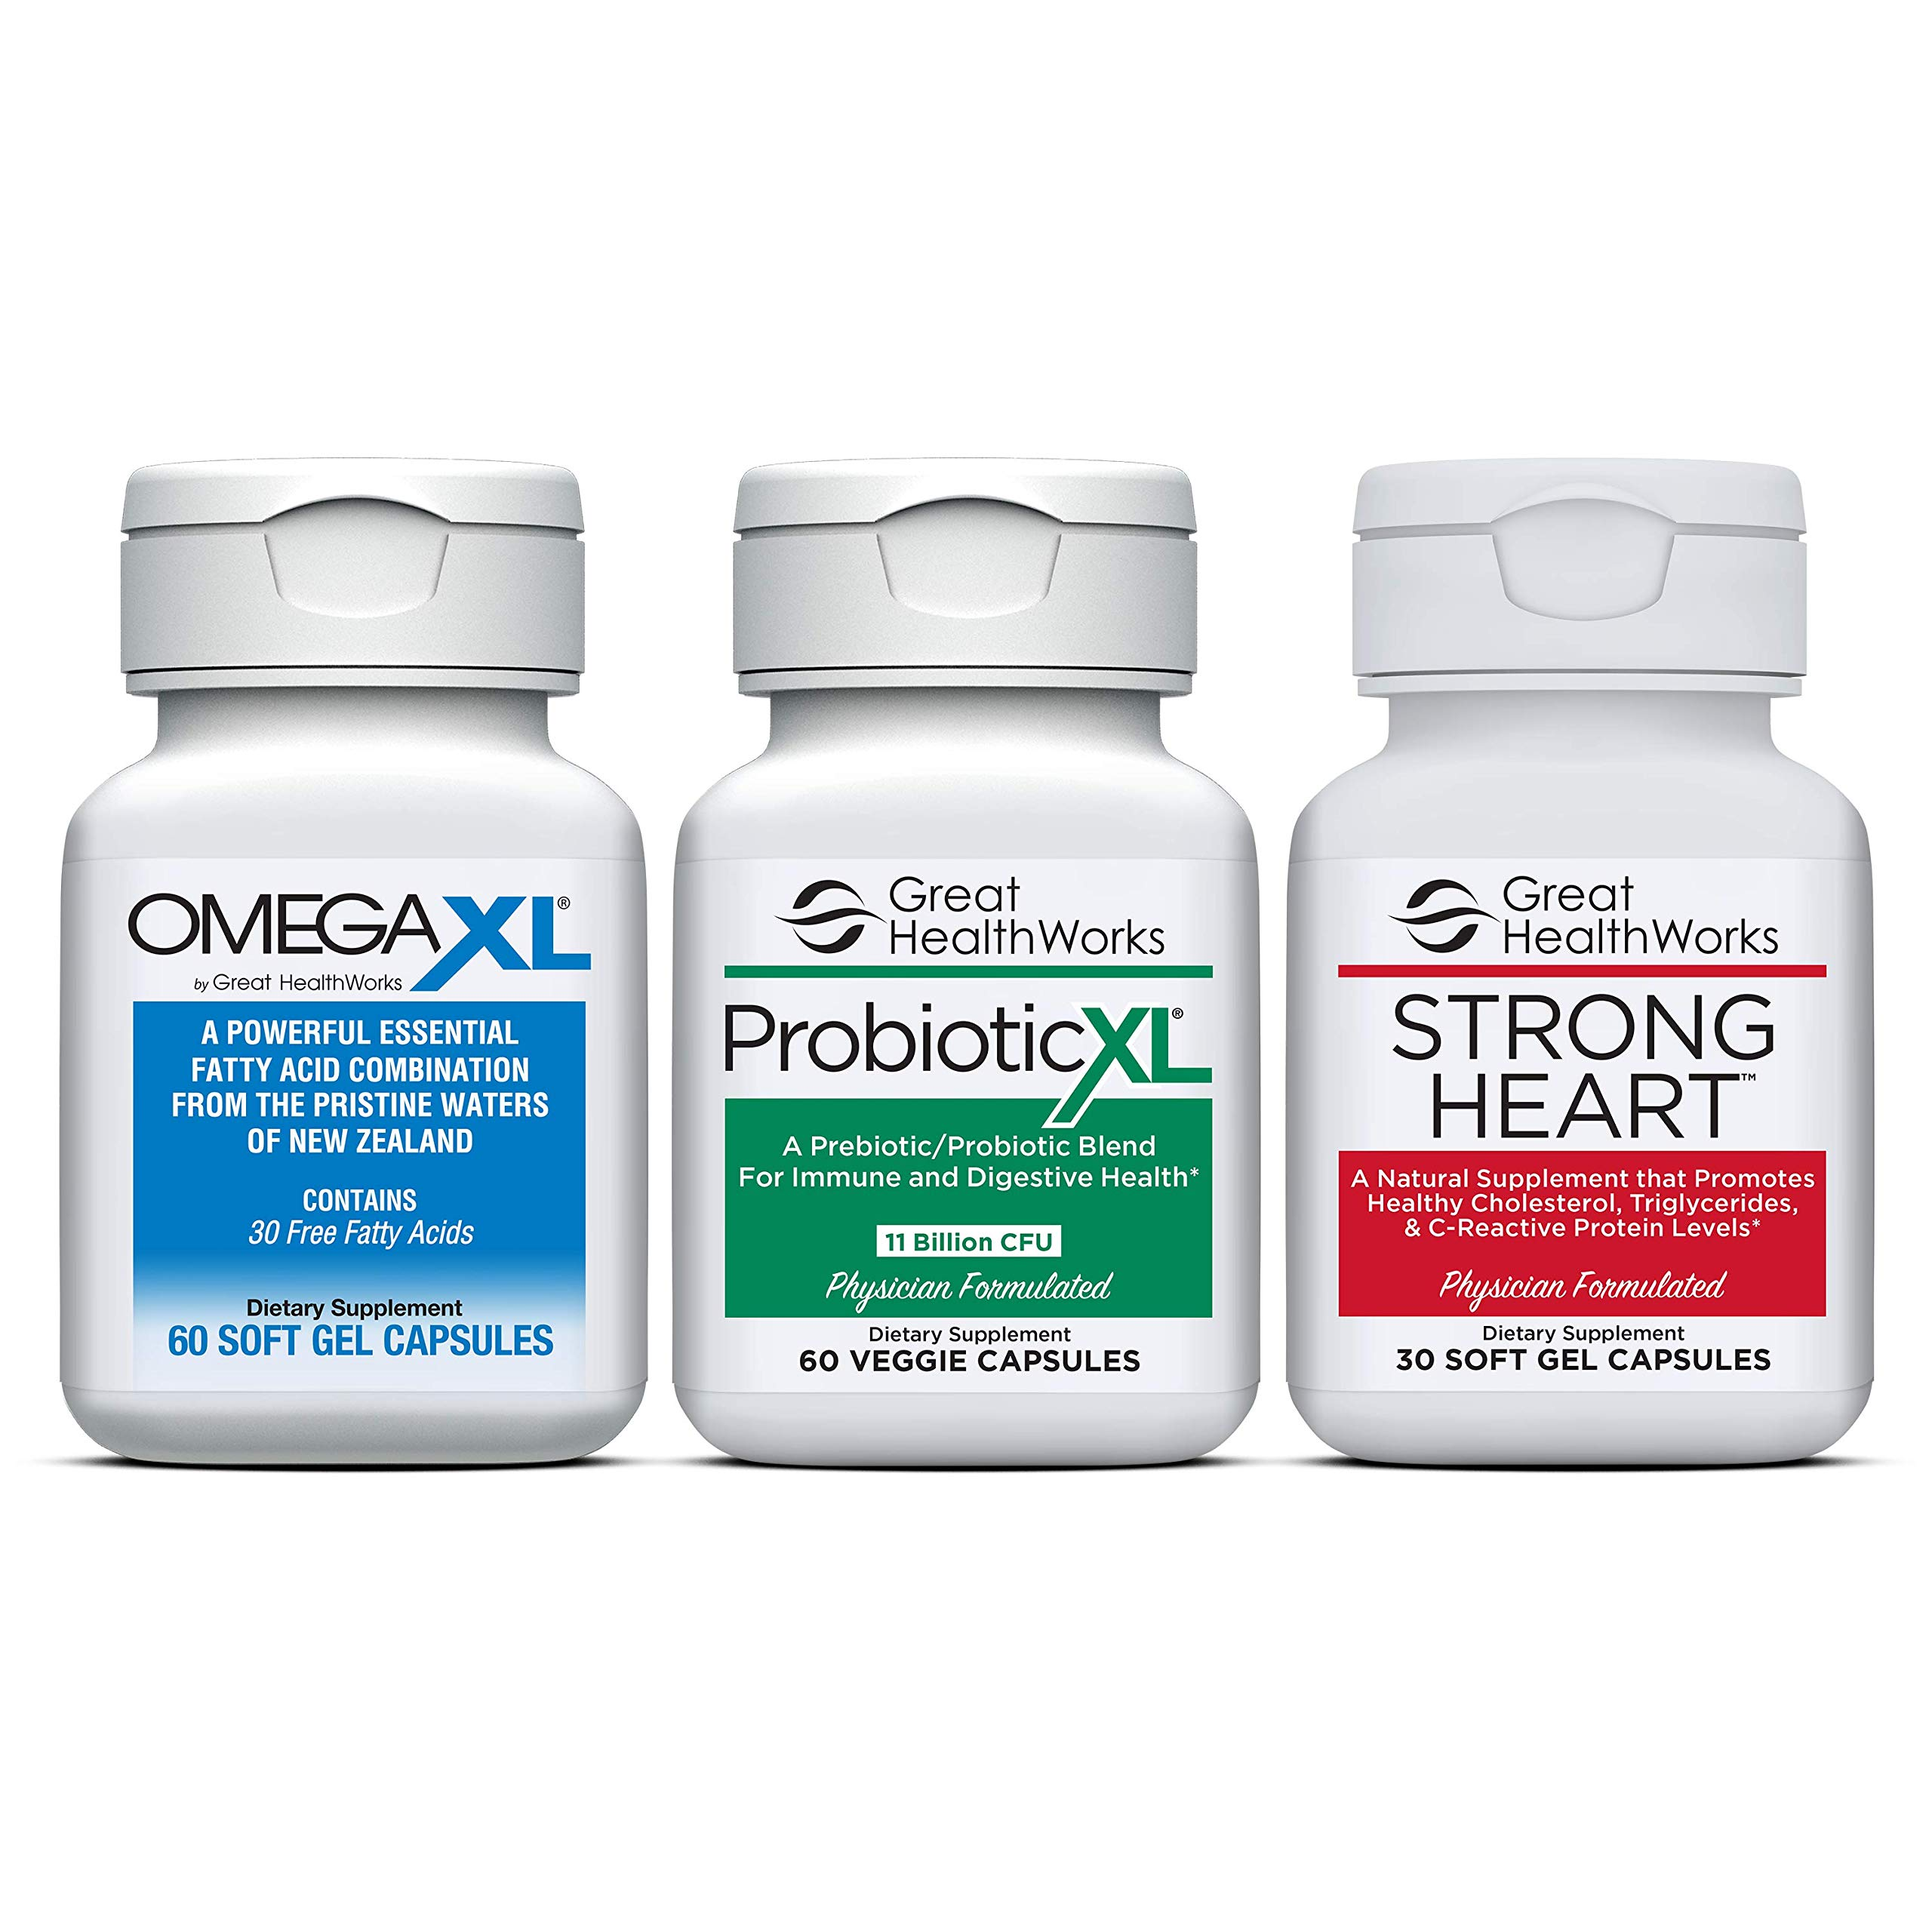 Bundle 3 Pack - Omega XL 60 Count Joint Pain Omega 3 Supplement + Probiotic XL with 11 Billion CFU 60 Count + Strong Heart 30 Count Omega 7 by Omega XL®